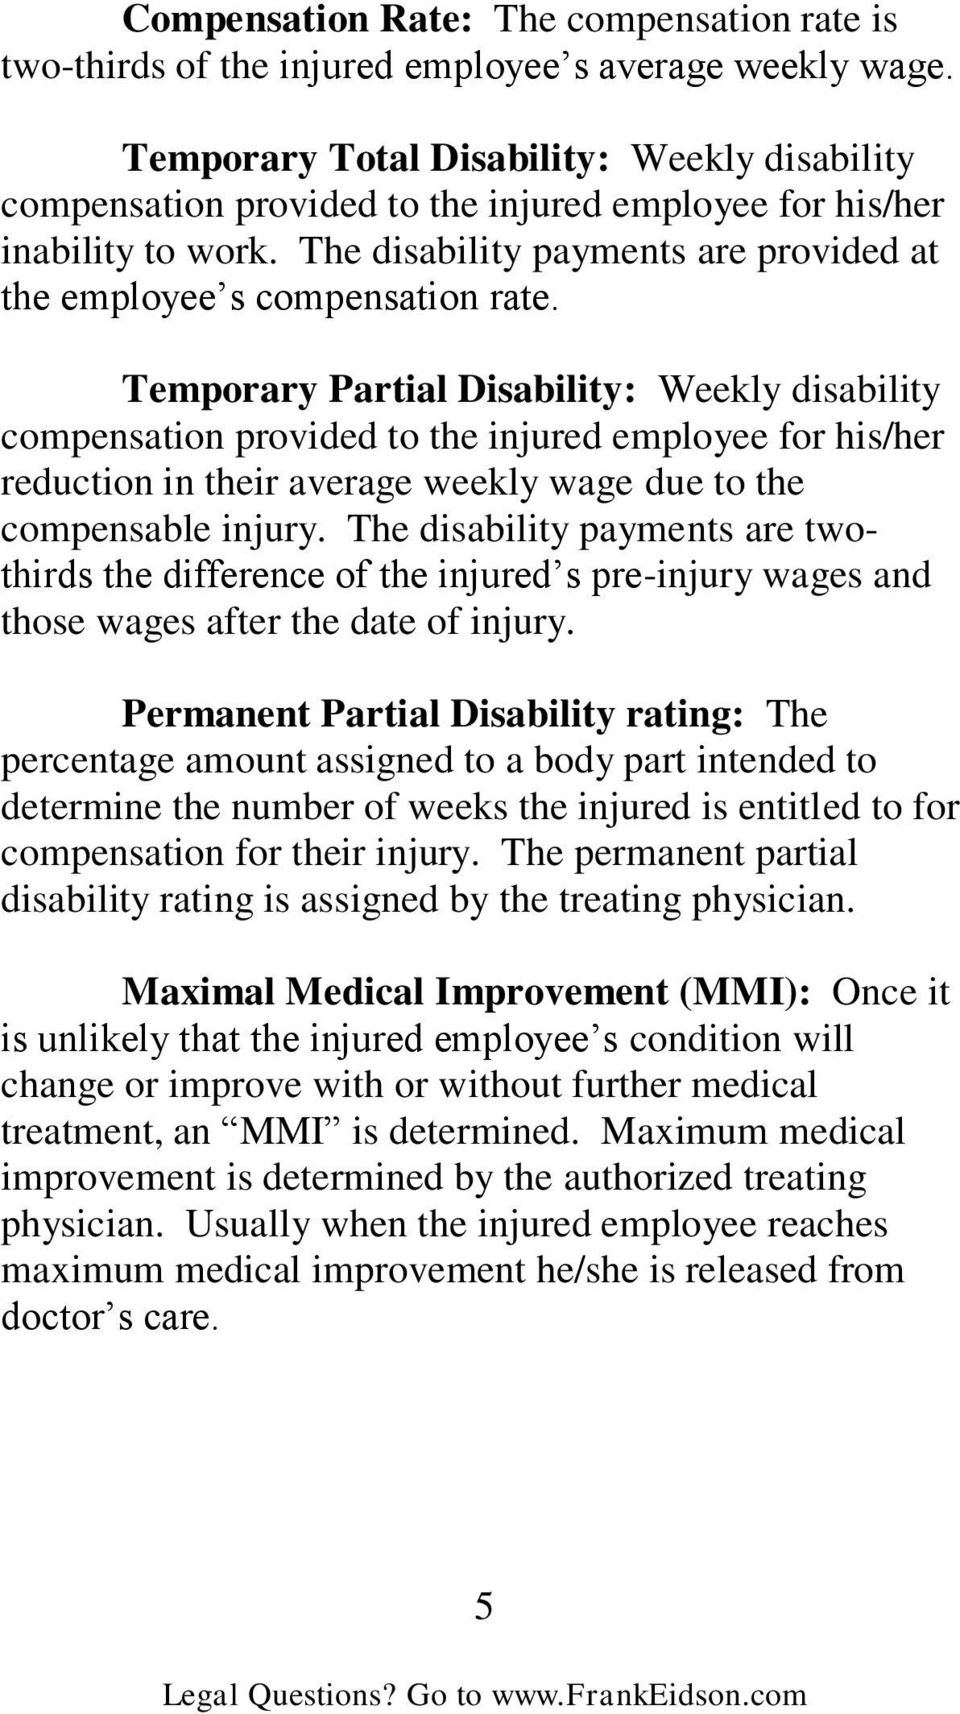 Temporary Partial Disability: Weekly disability compensation provided to the injured employee for his/her reduction in their average weekly wage due to the compensable injury.